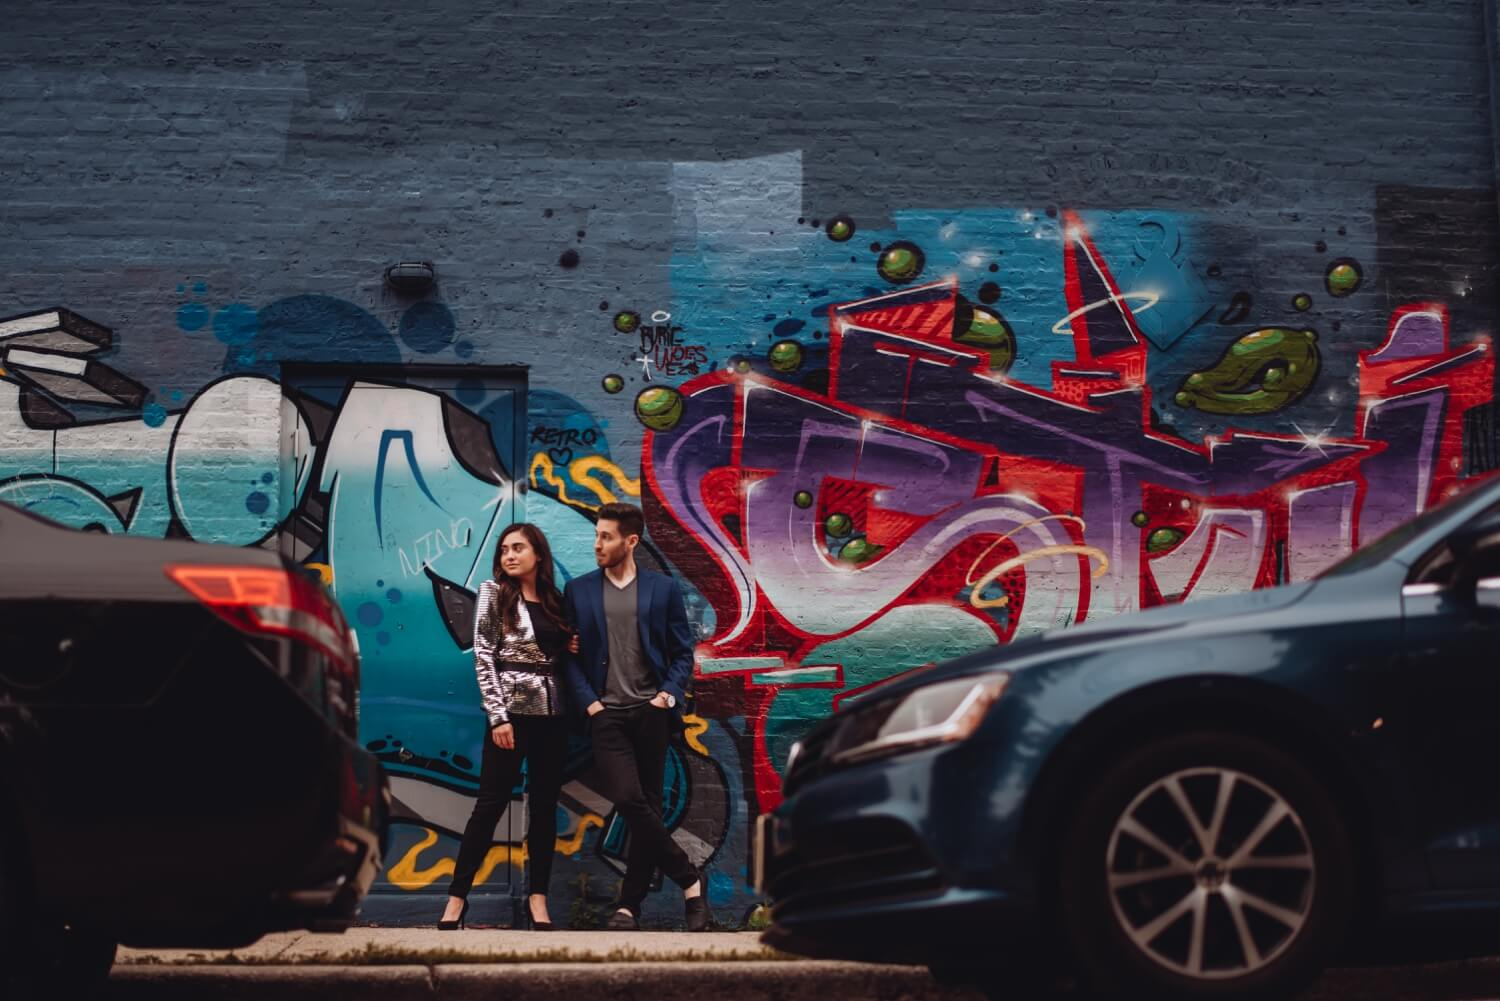 Wicker Park Engagement Photographer - The Adamkovi, by graffiti wall